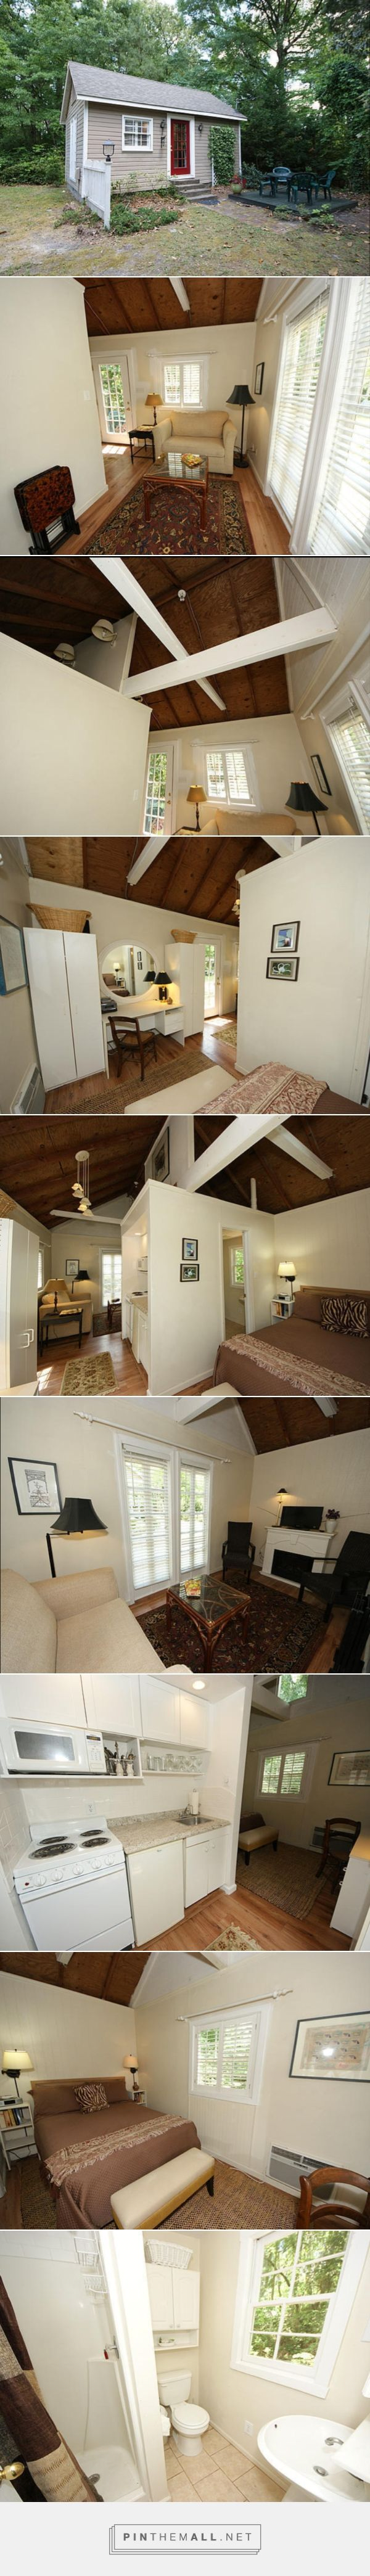 Best 25 Home for rent ideas on Pinterest